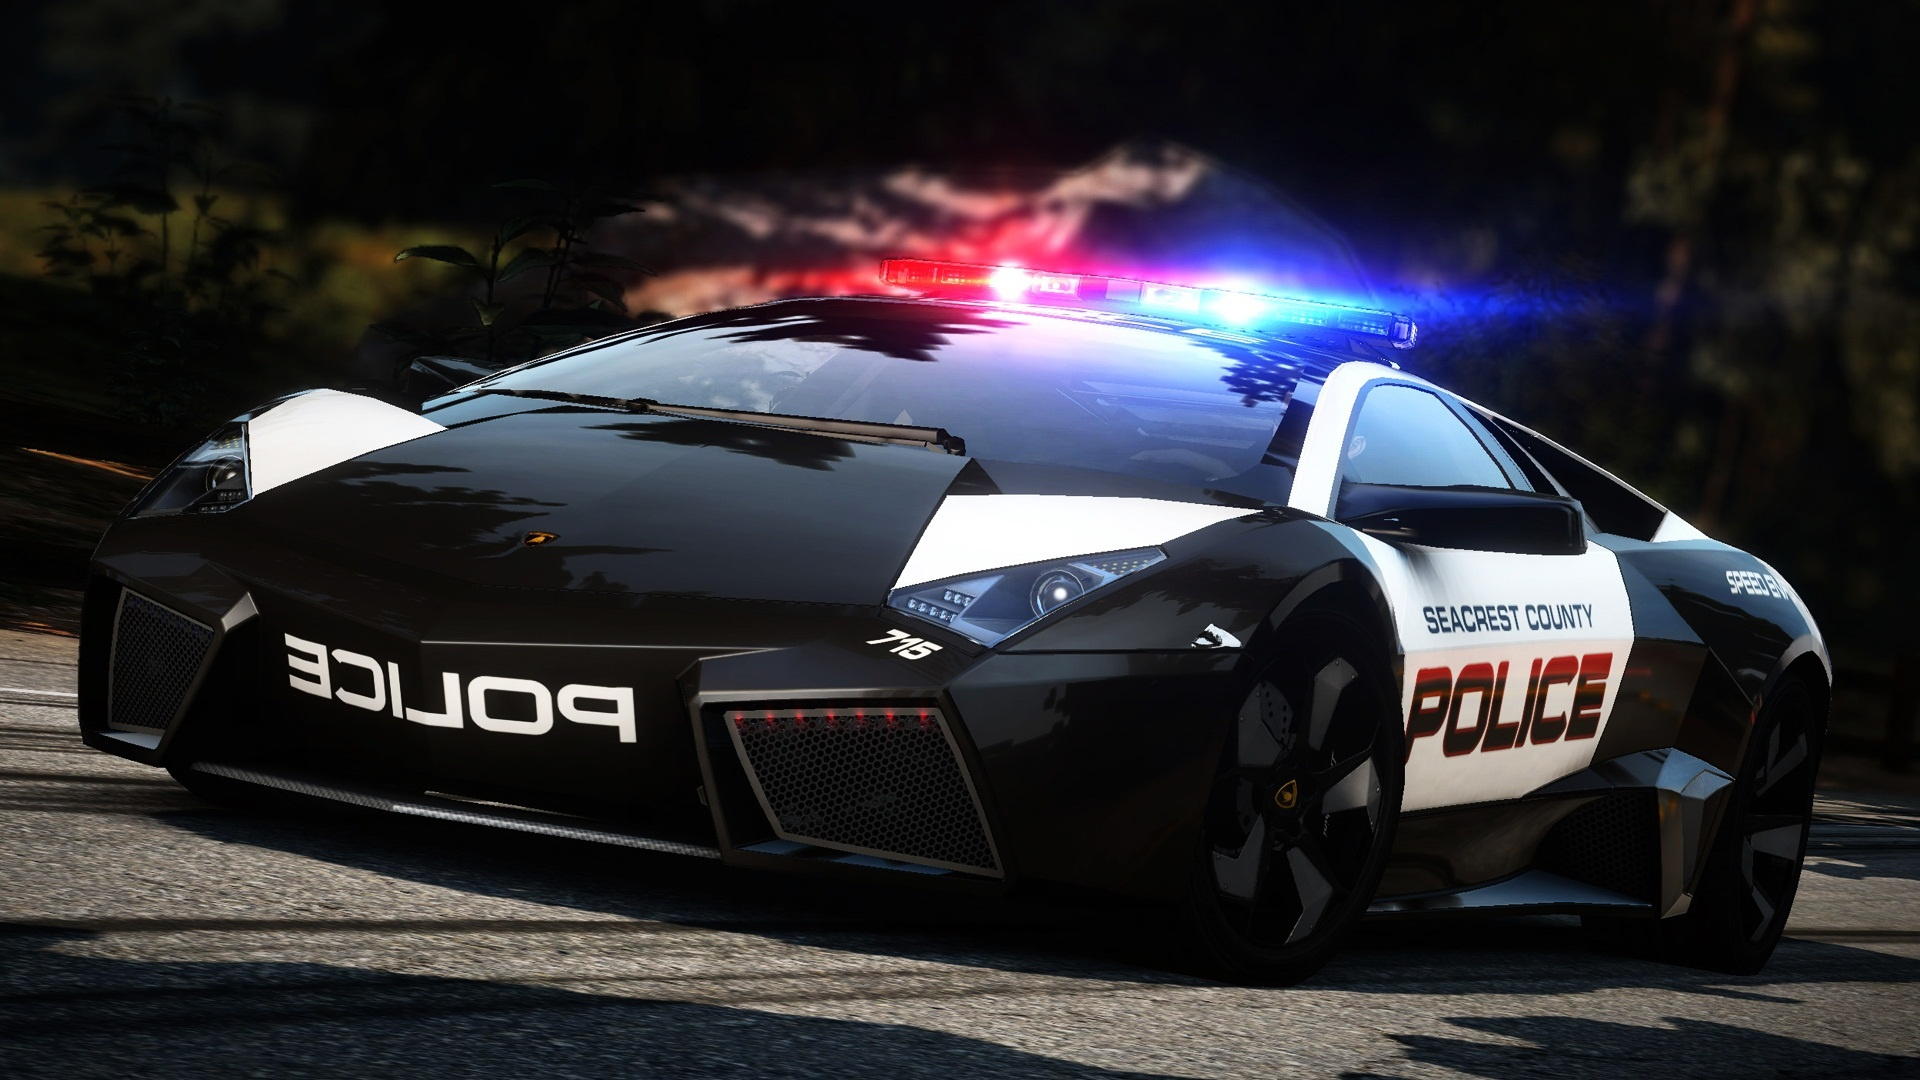 Lamborghini Reventon Hot Pursuit Wallpapers HD Wallpapers 1920x1080